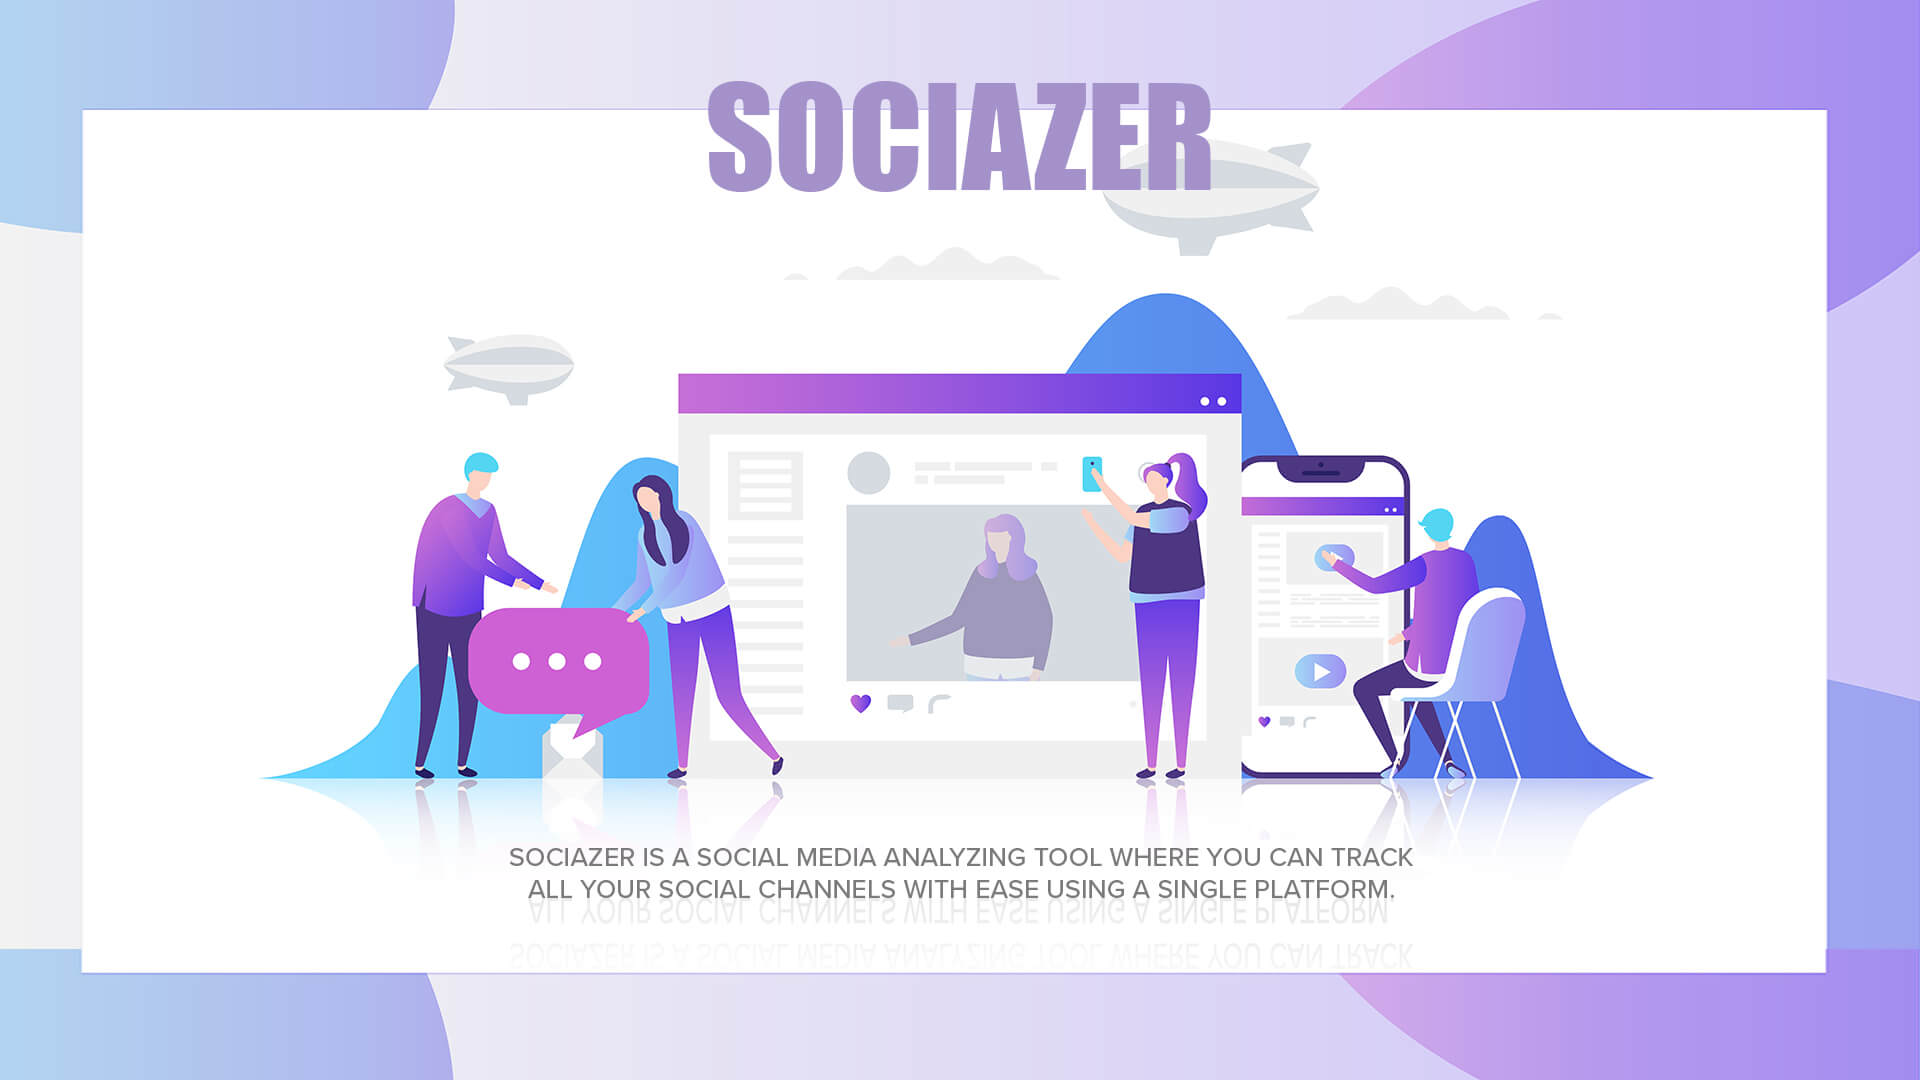 Sociazer Social Analysing & Tracking Tool - Hero Image 1